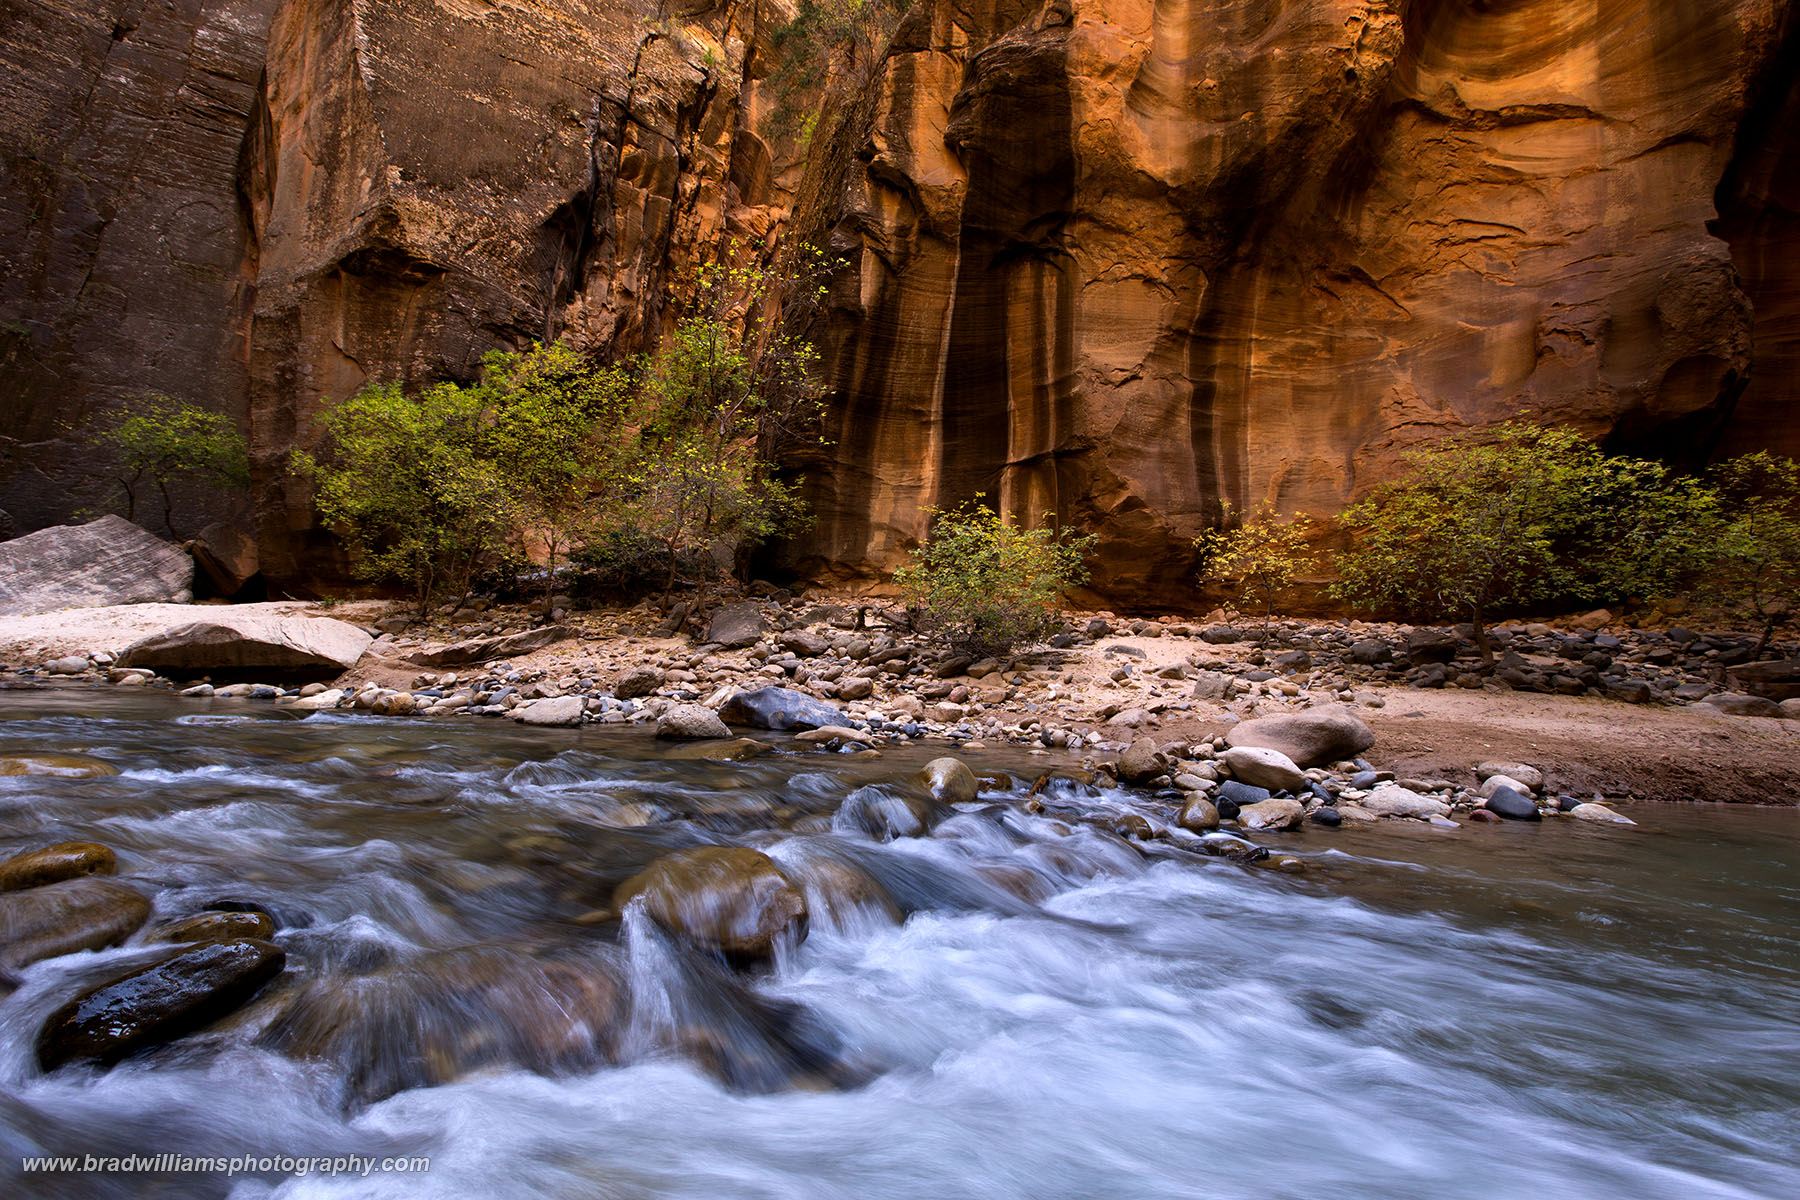 Narrows, Zion National Park, Utah​, desert varnish, photo